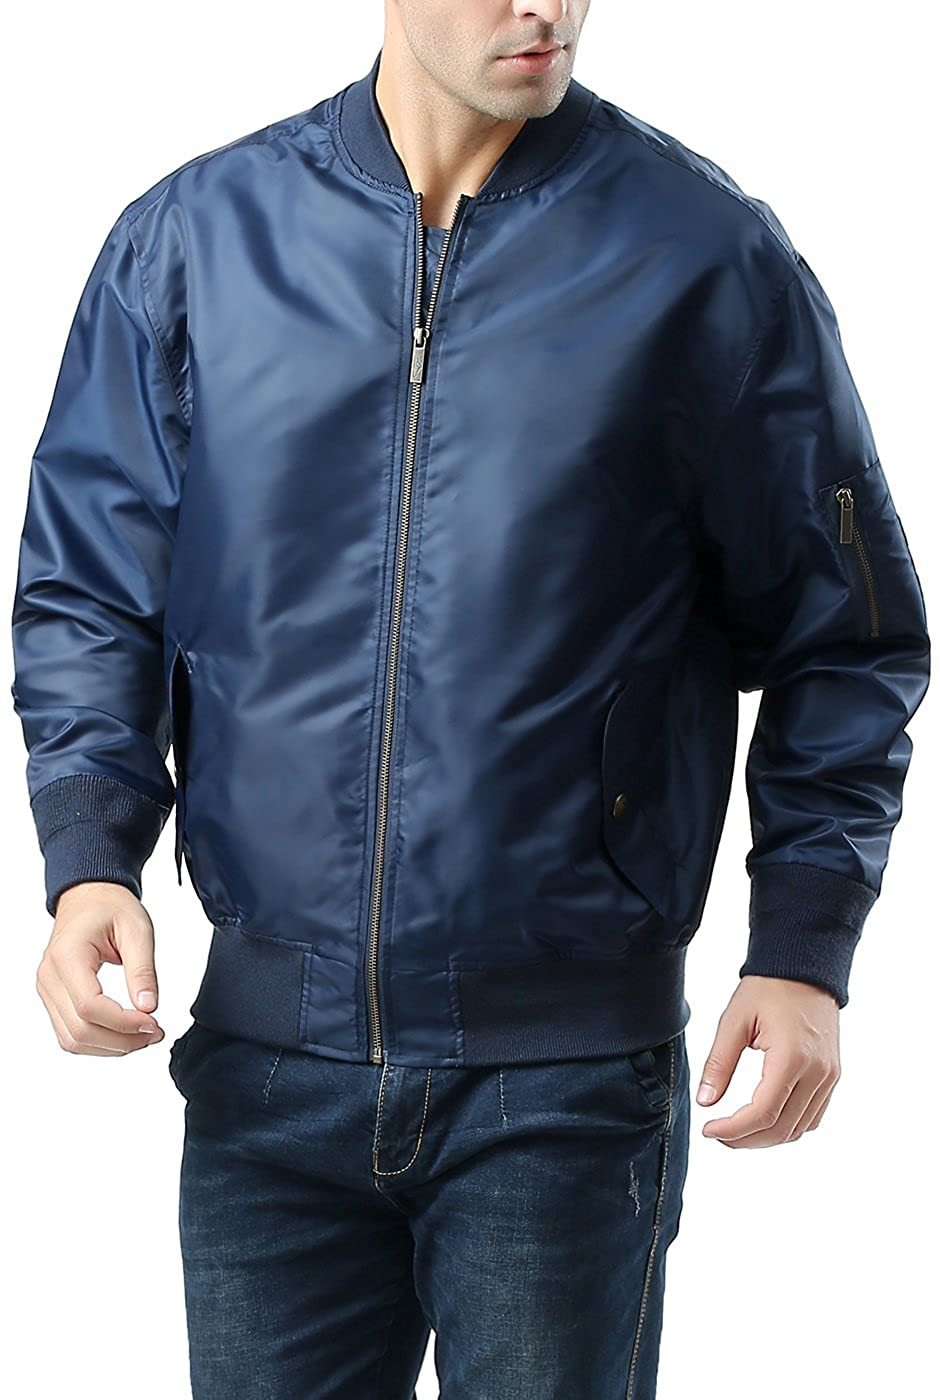 ... 4d70a dab52 Landing Leathers Men s Air Force MA-1 Bomber Jacket - Navy  M ... ae4ae09aced